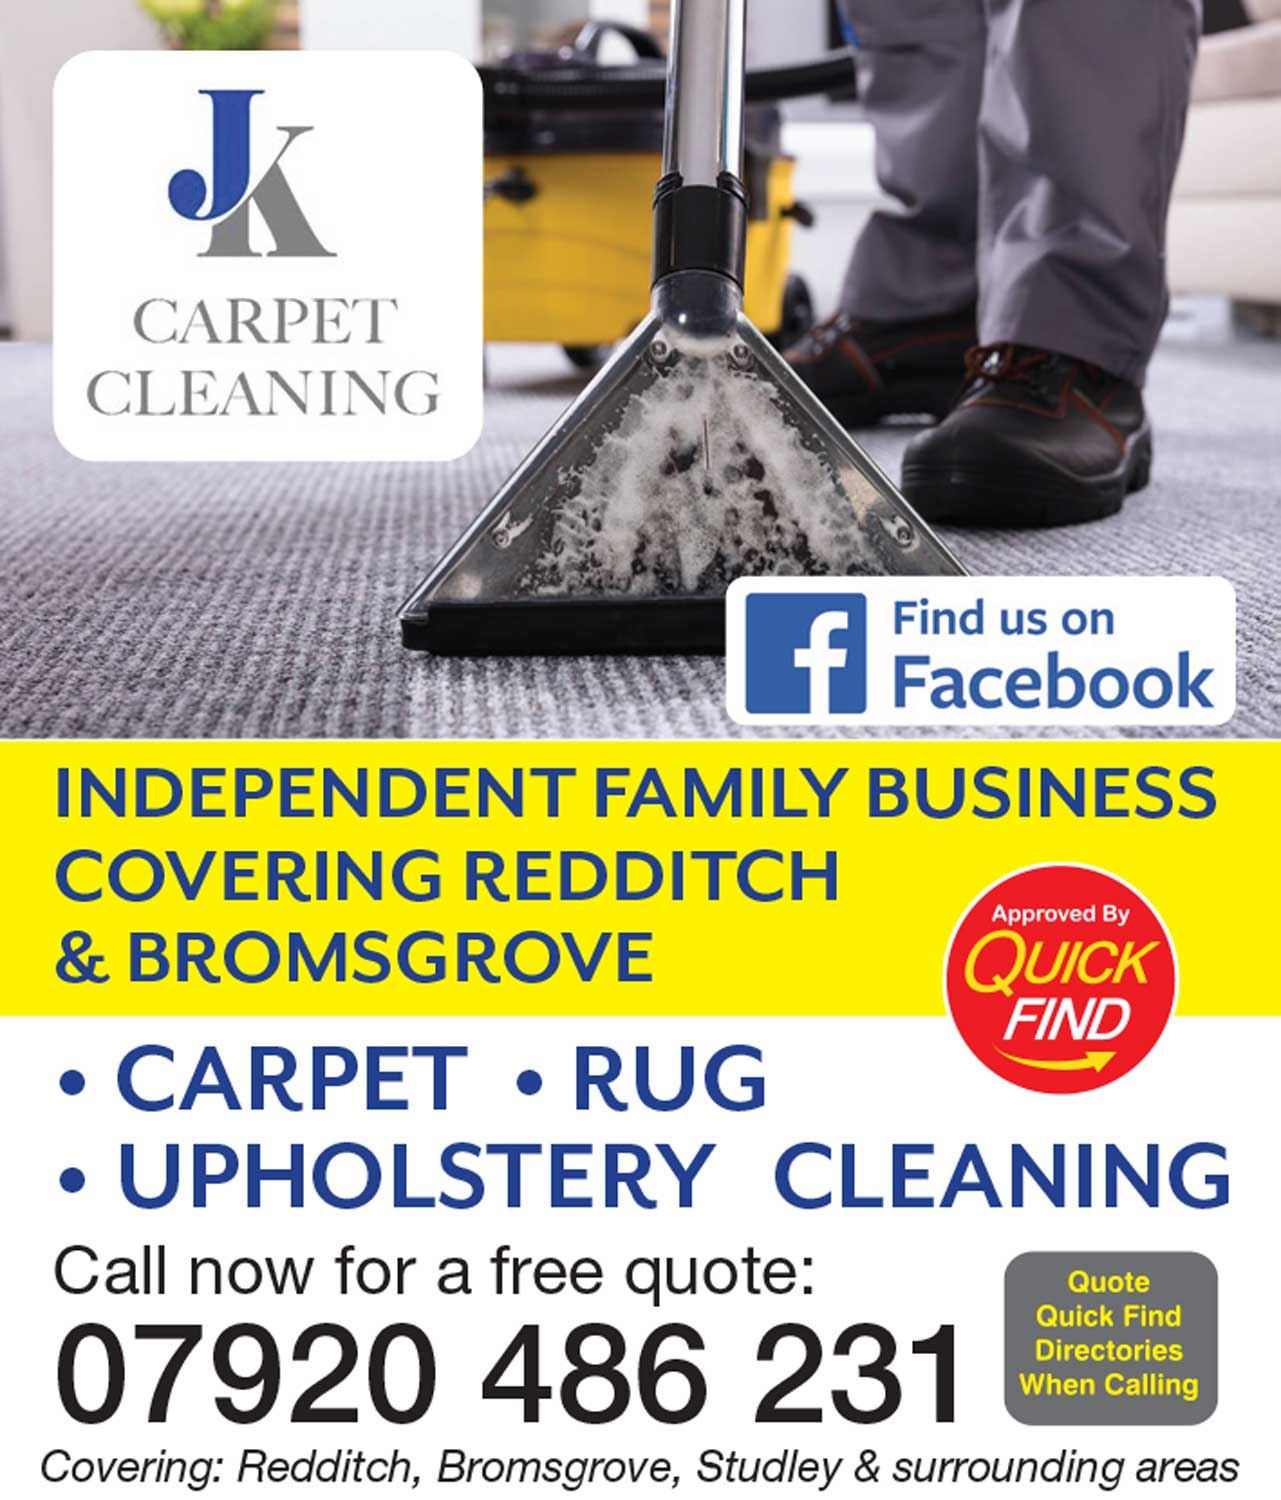 JK Carpet Cleaning